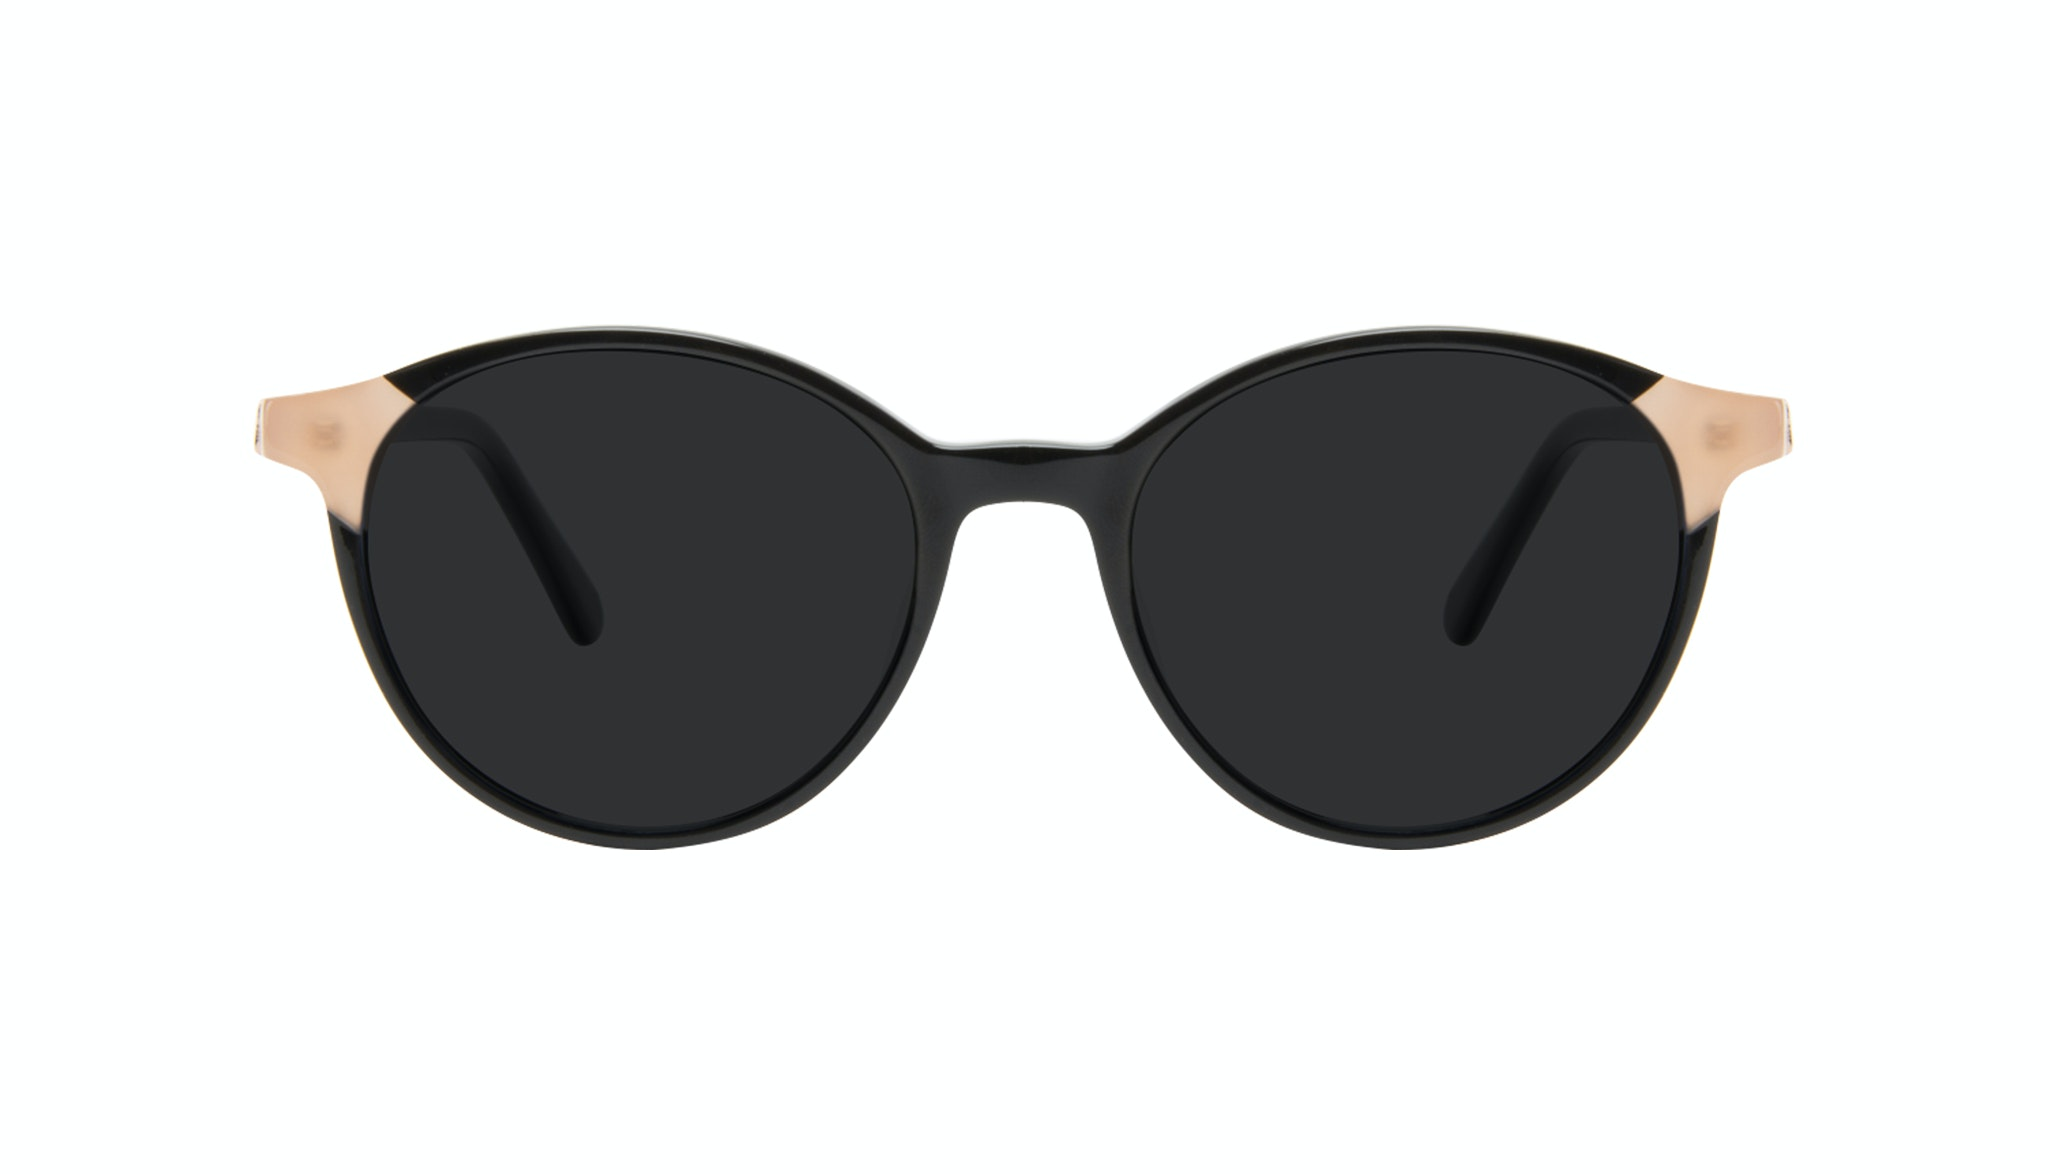 Affordable Fashion Glasses Round Sunglasses Women Vivid Black Ivory